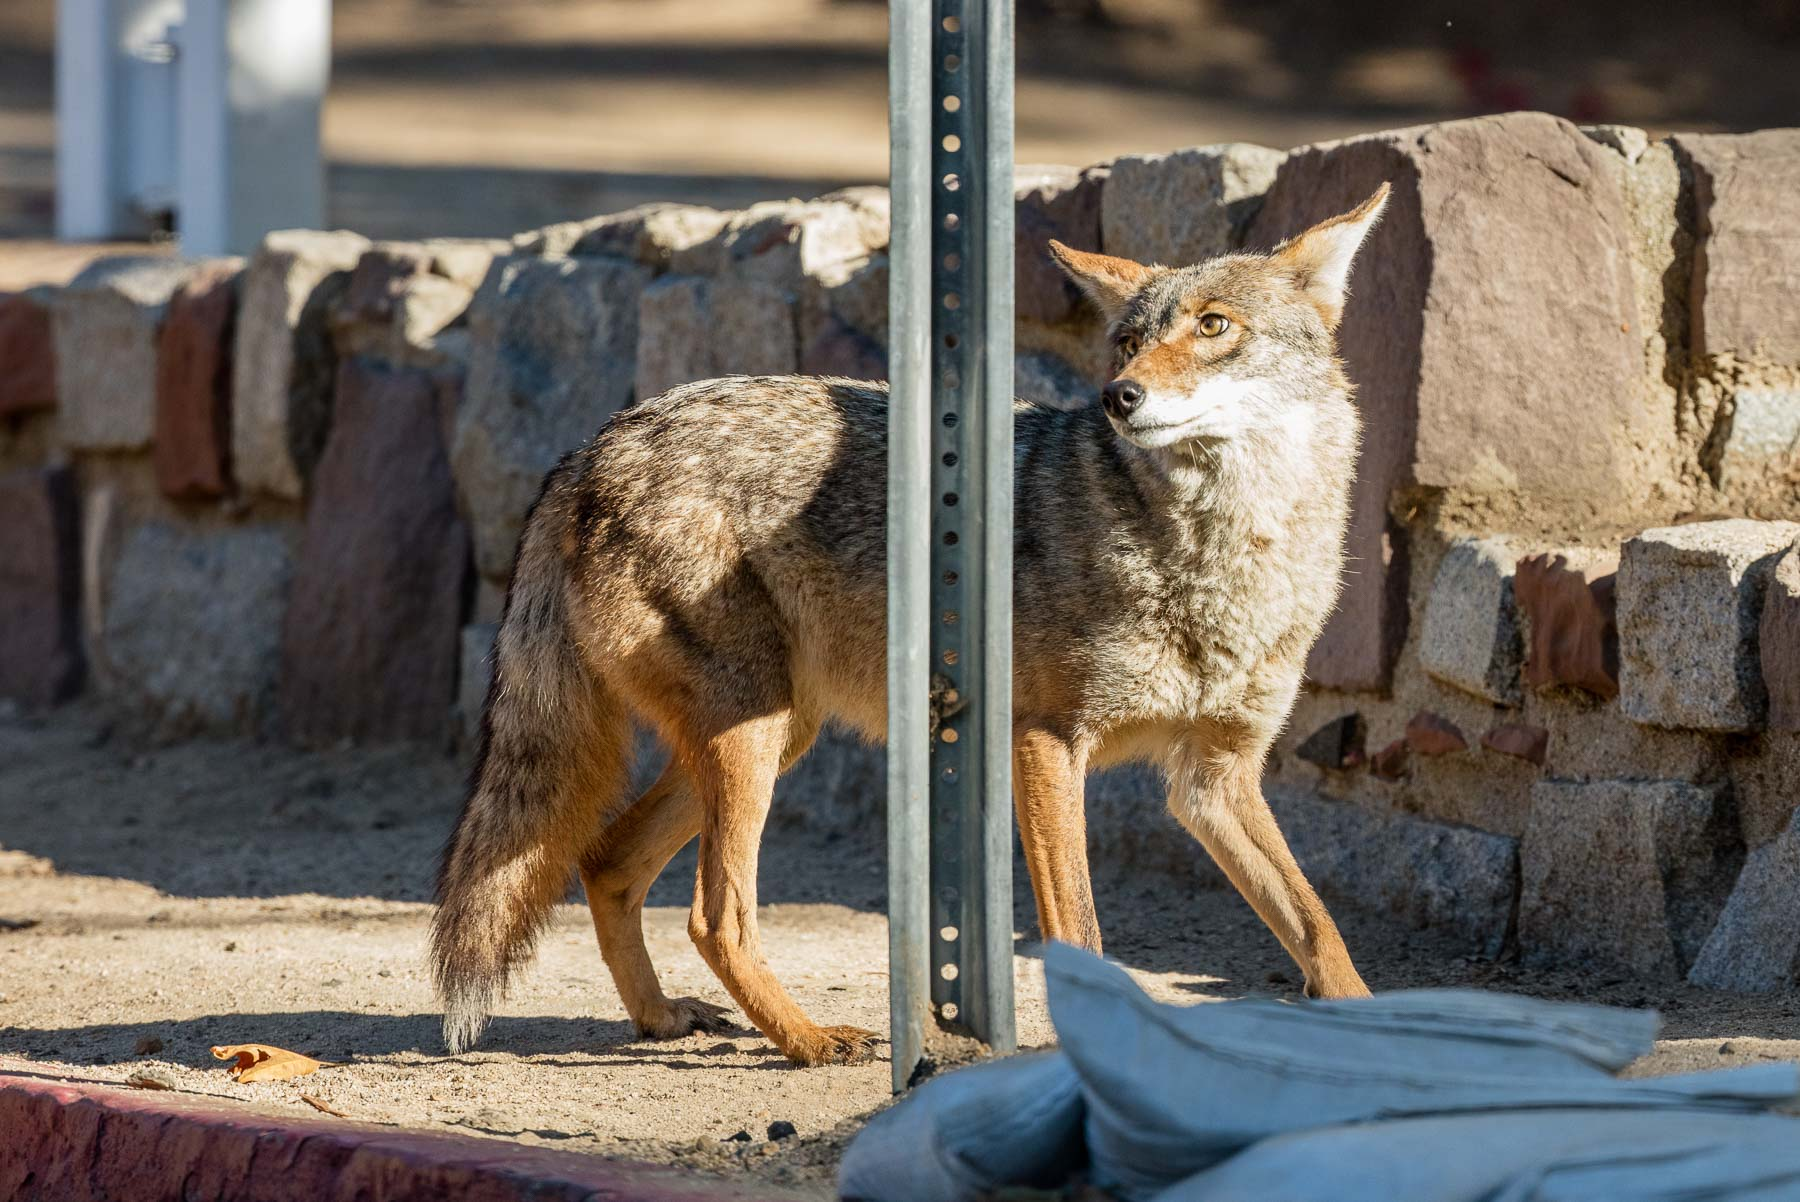 The coyote aren't totally tame. They're still a little wary of anything human coming too close.